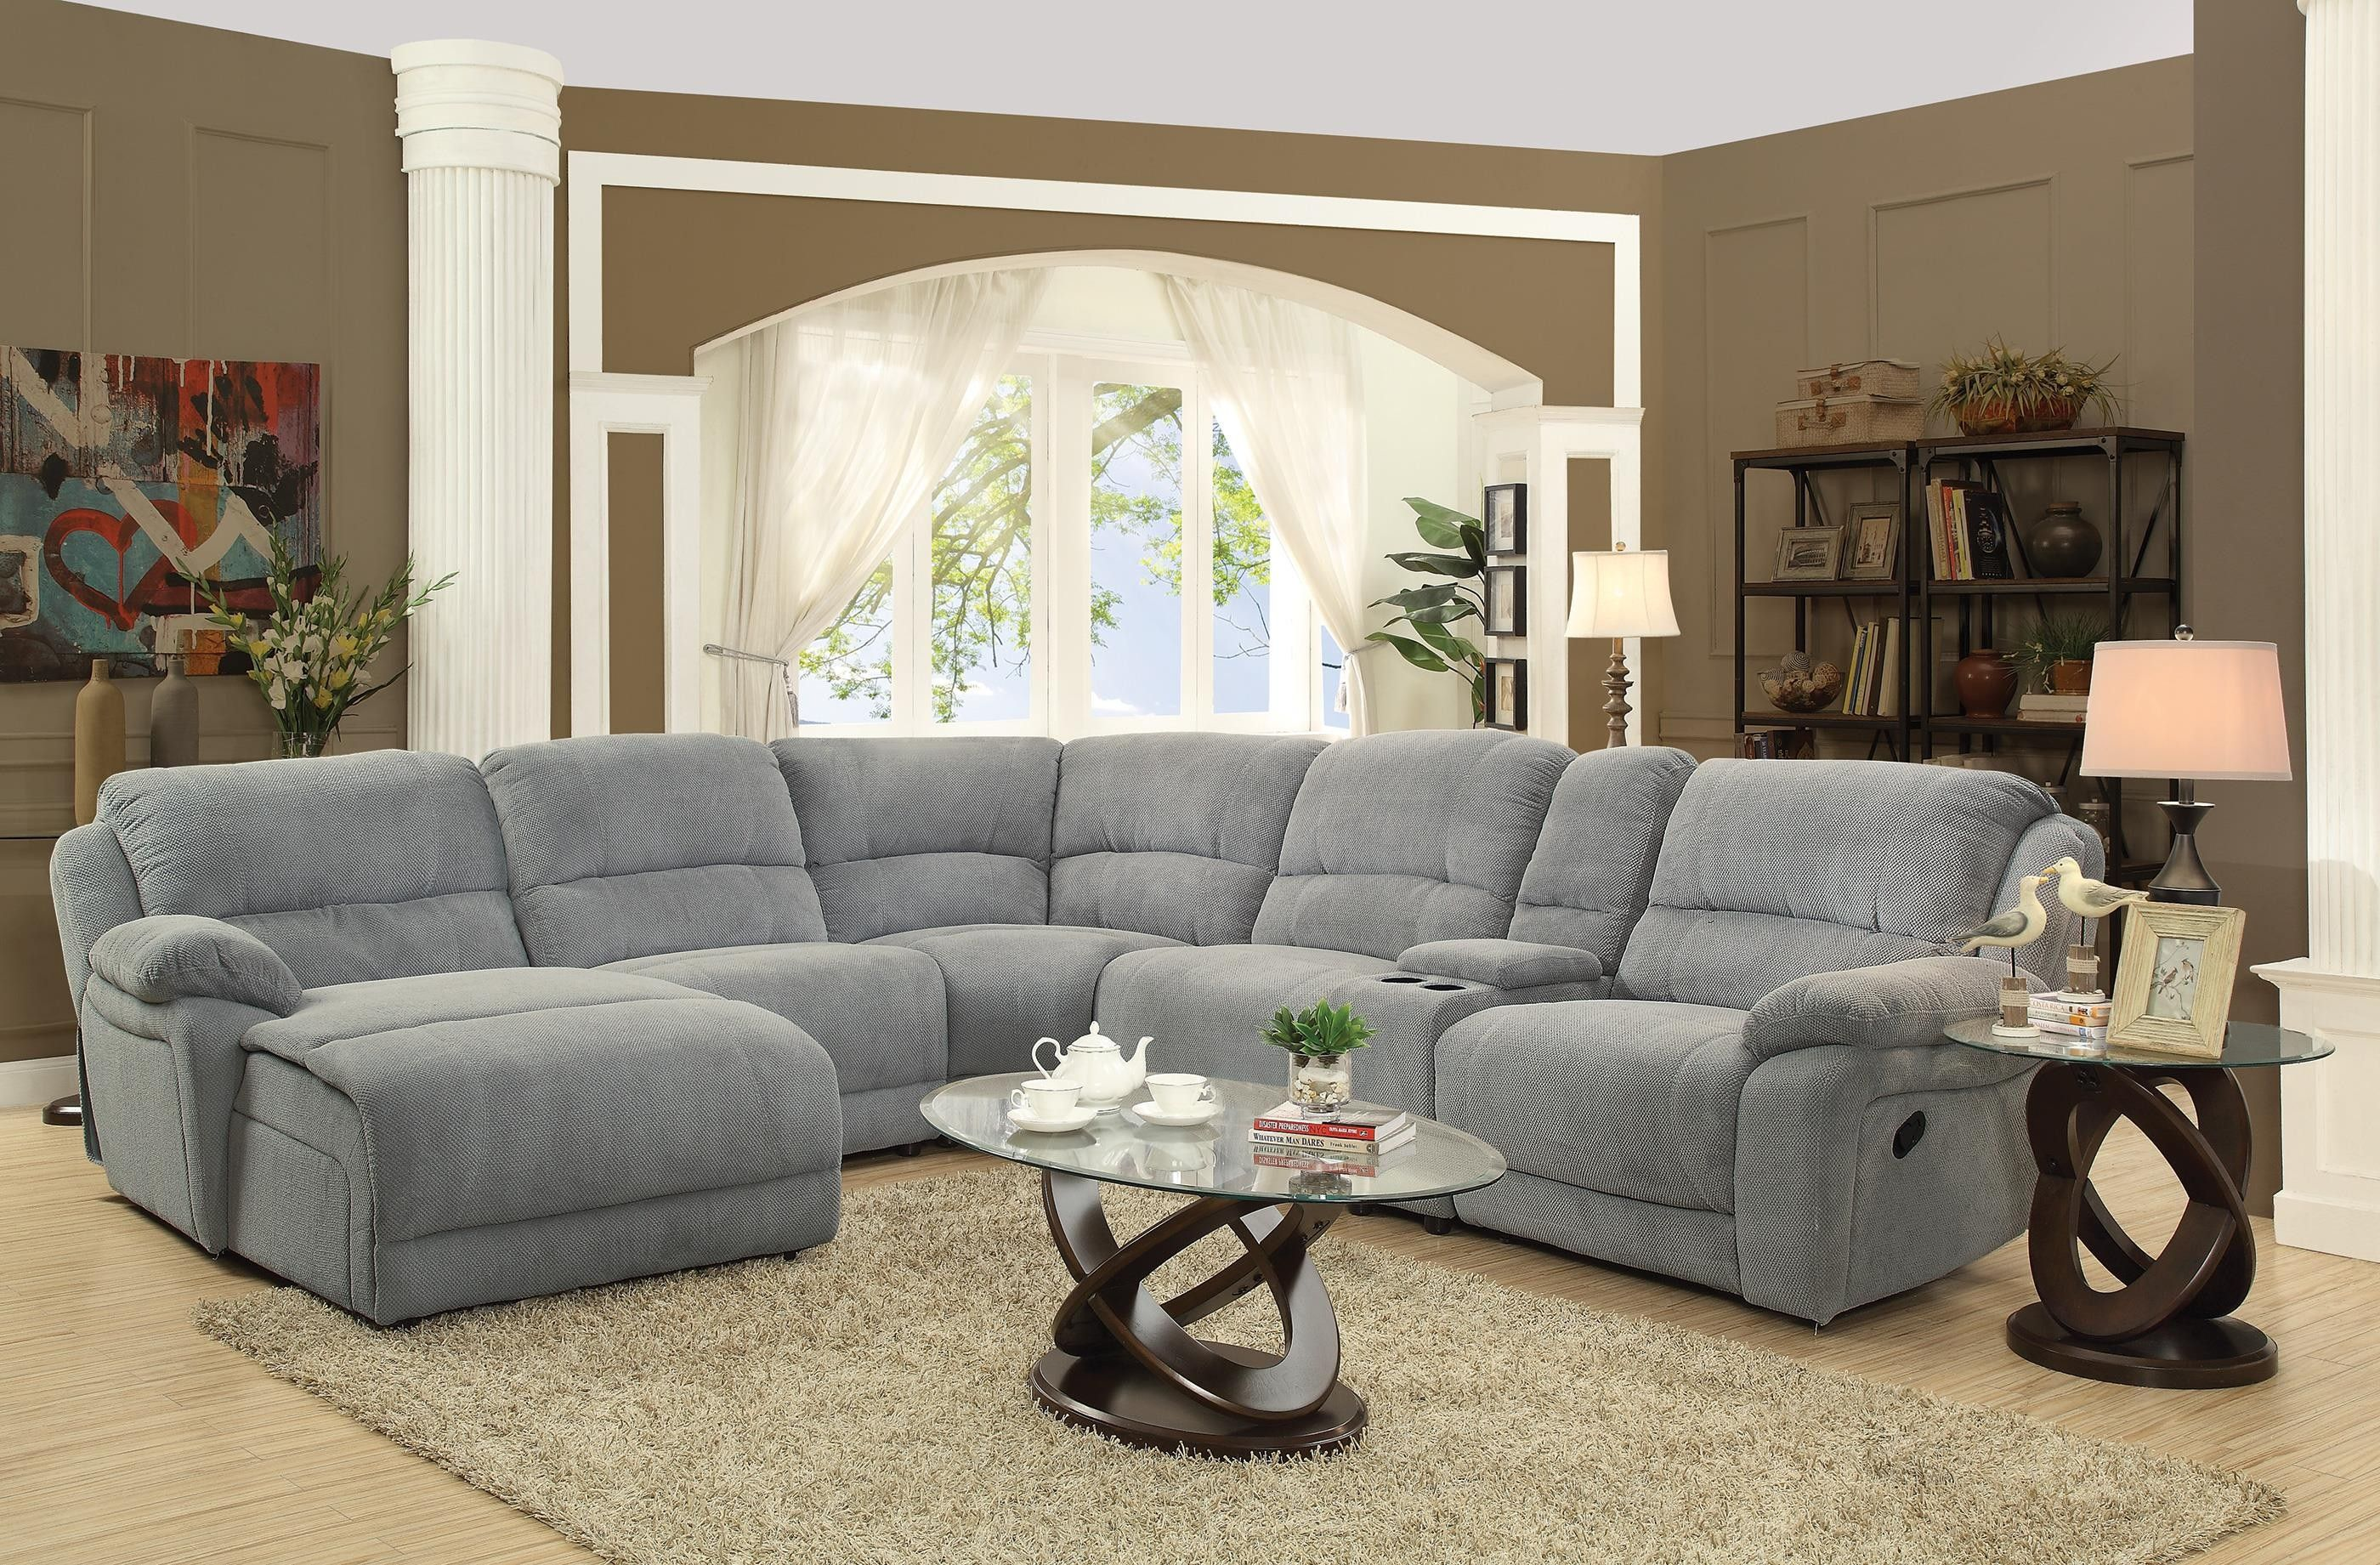 Coaster 600017 Mackenzie Silver Tone 6 Piece Reclining Sectional Sofa Main Image Reclining Sectional Sectional Sofa With Recliner Microfiber Sectional Sofa